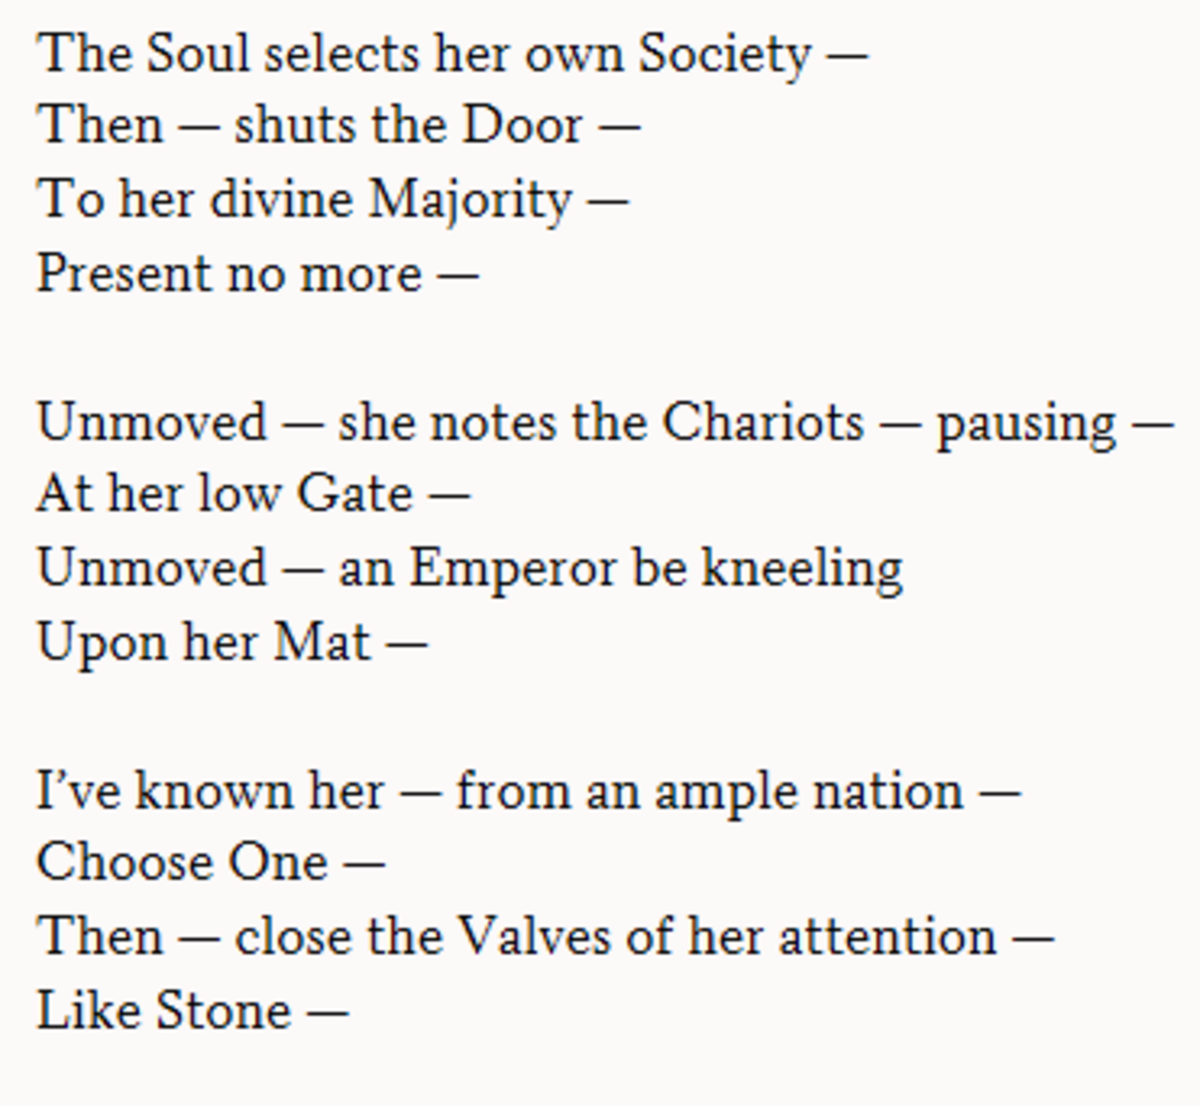 The Soul Selects